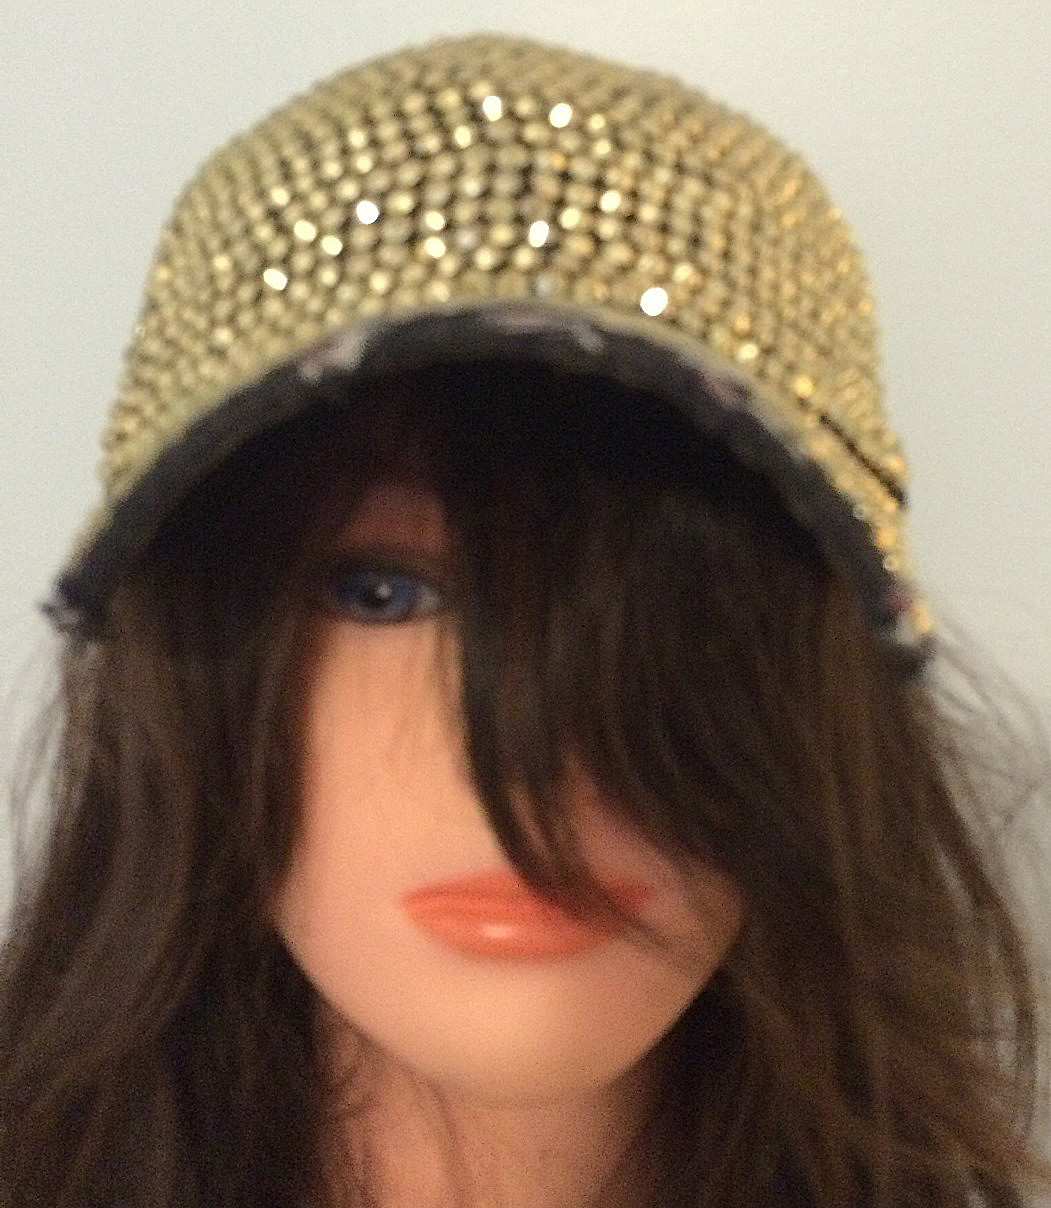 Black with gold bejeweled cap